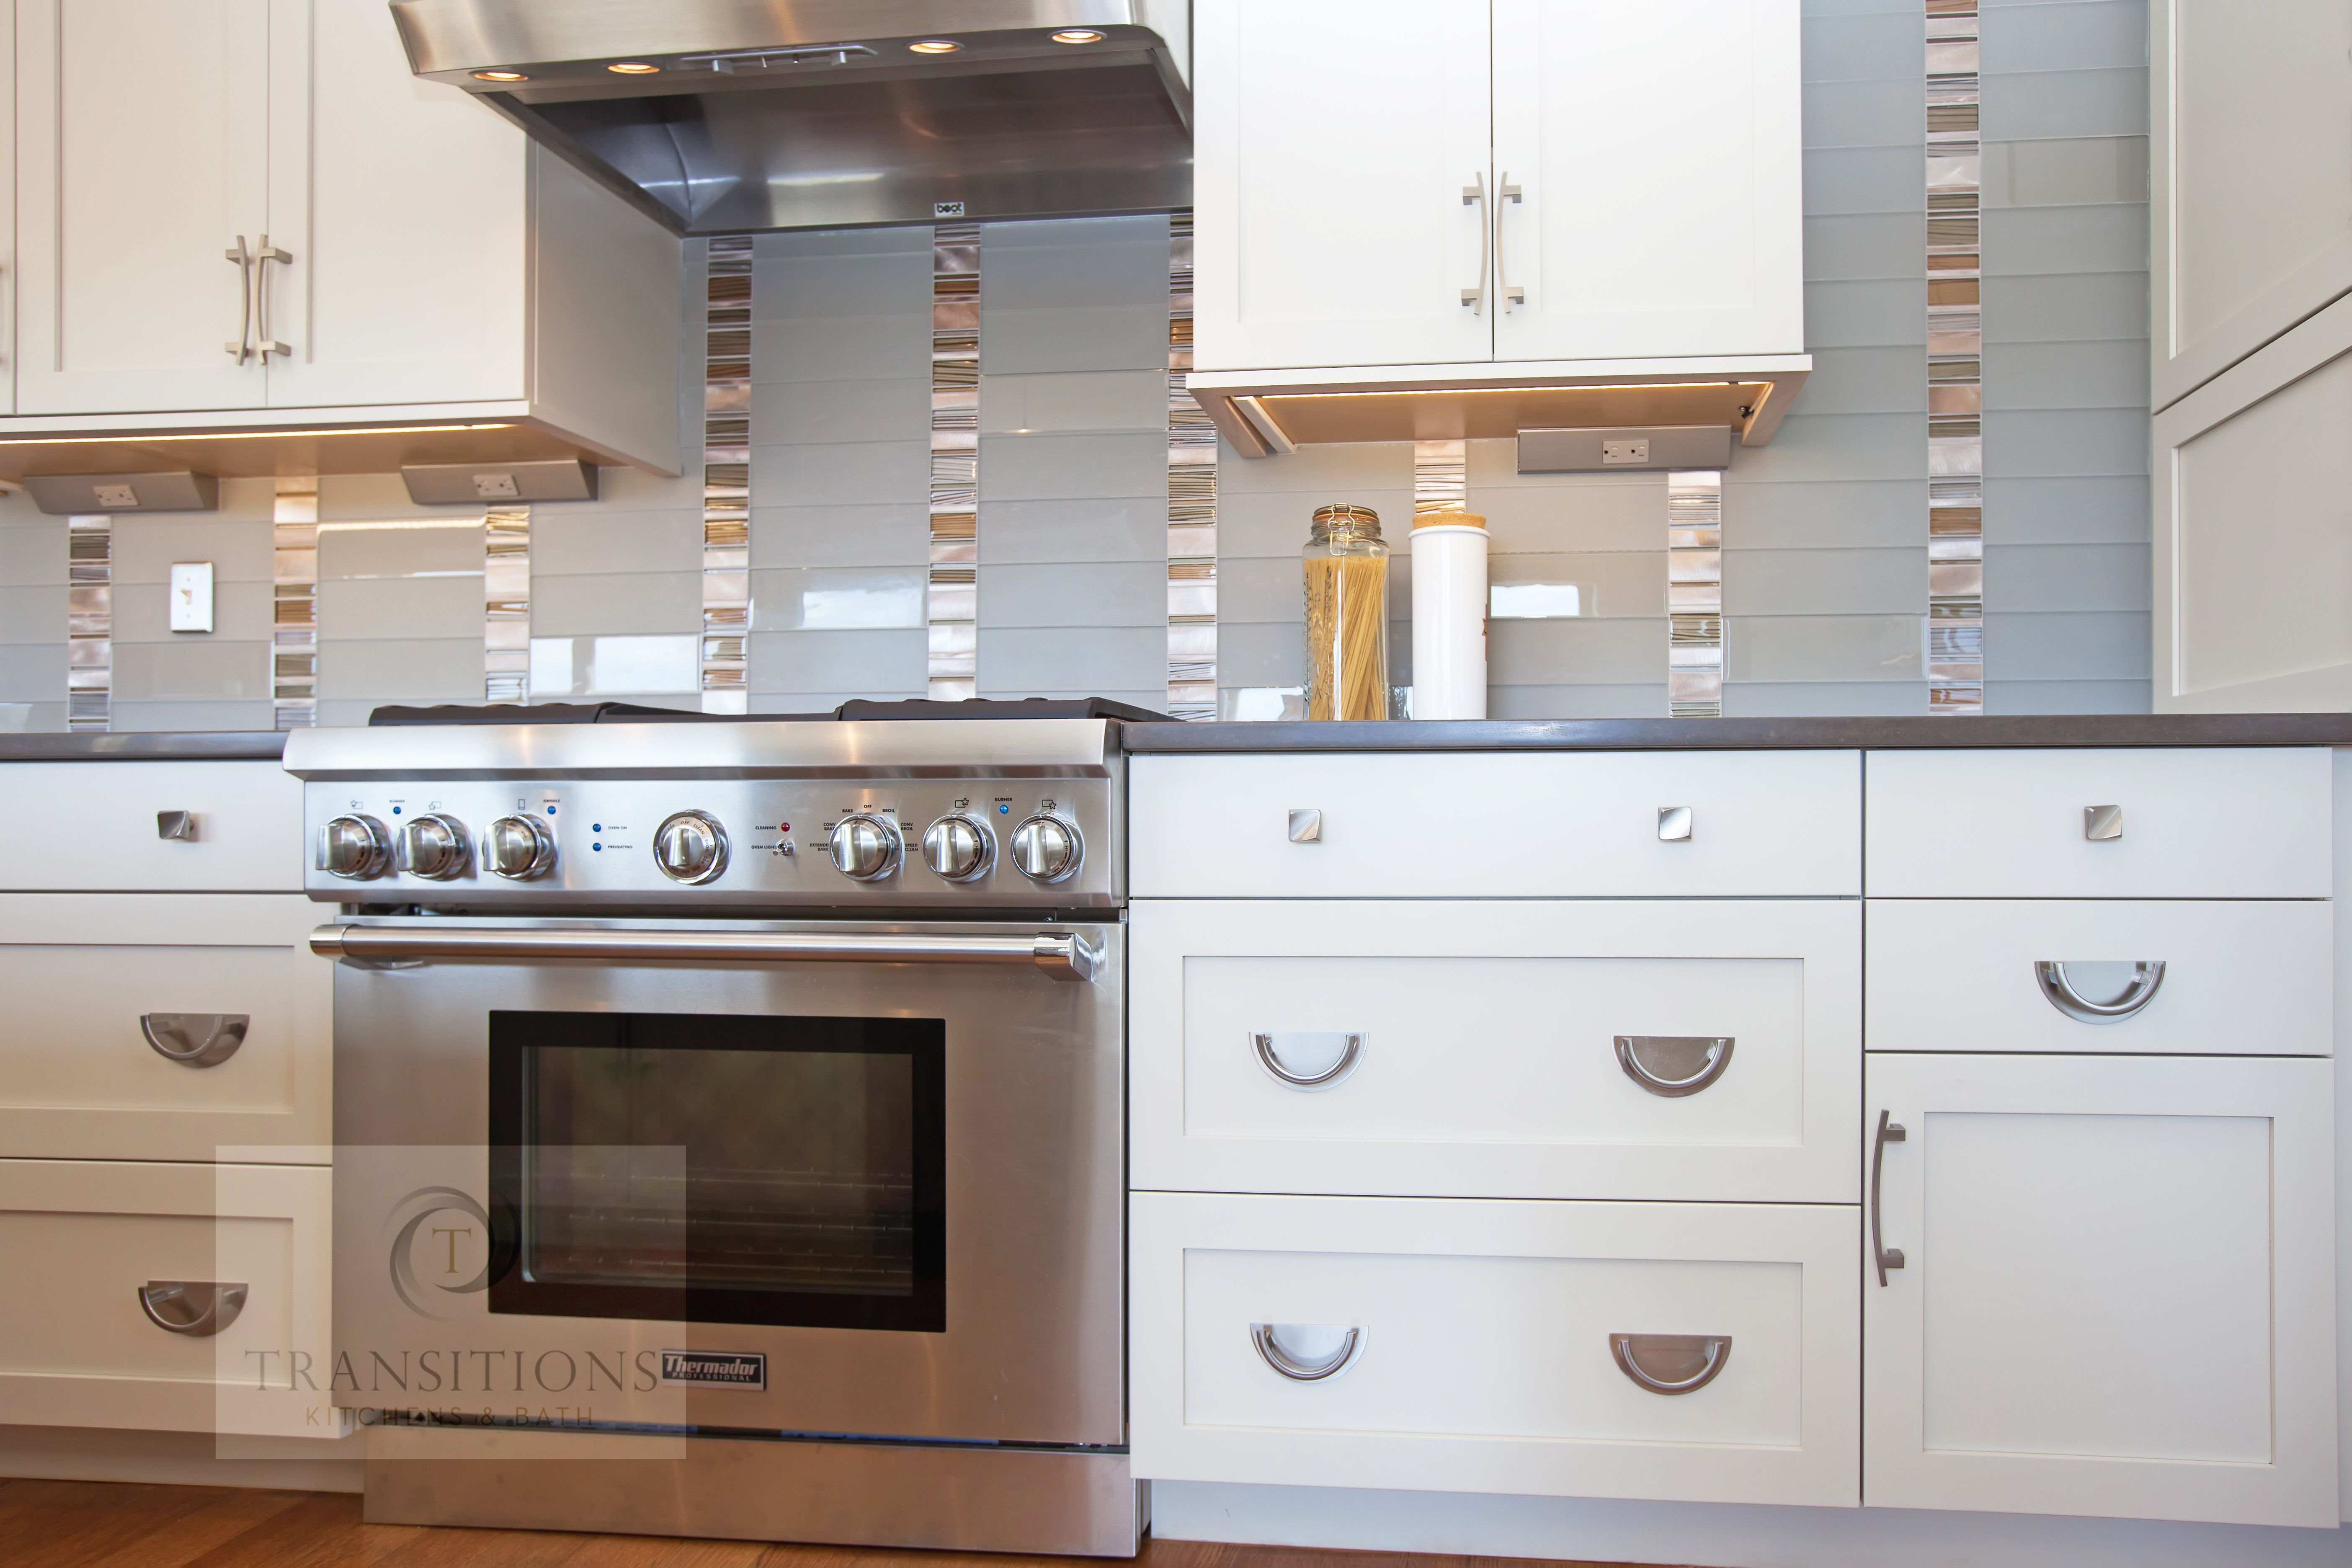 This transitional style kitchen design is a bright spot at the ...